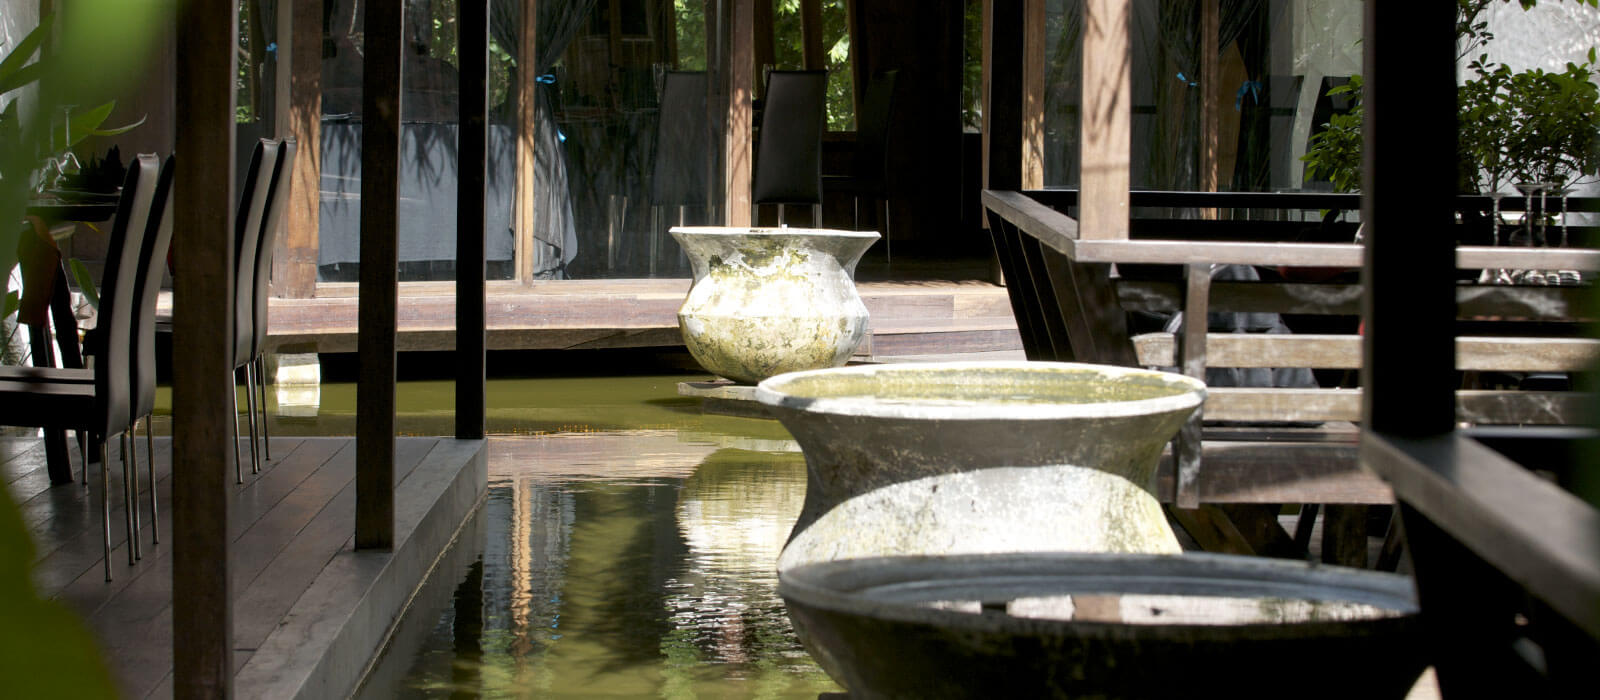 Thai & Shan Cuisine | Rustic-Luxe Dining Experience